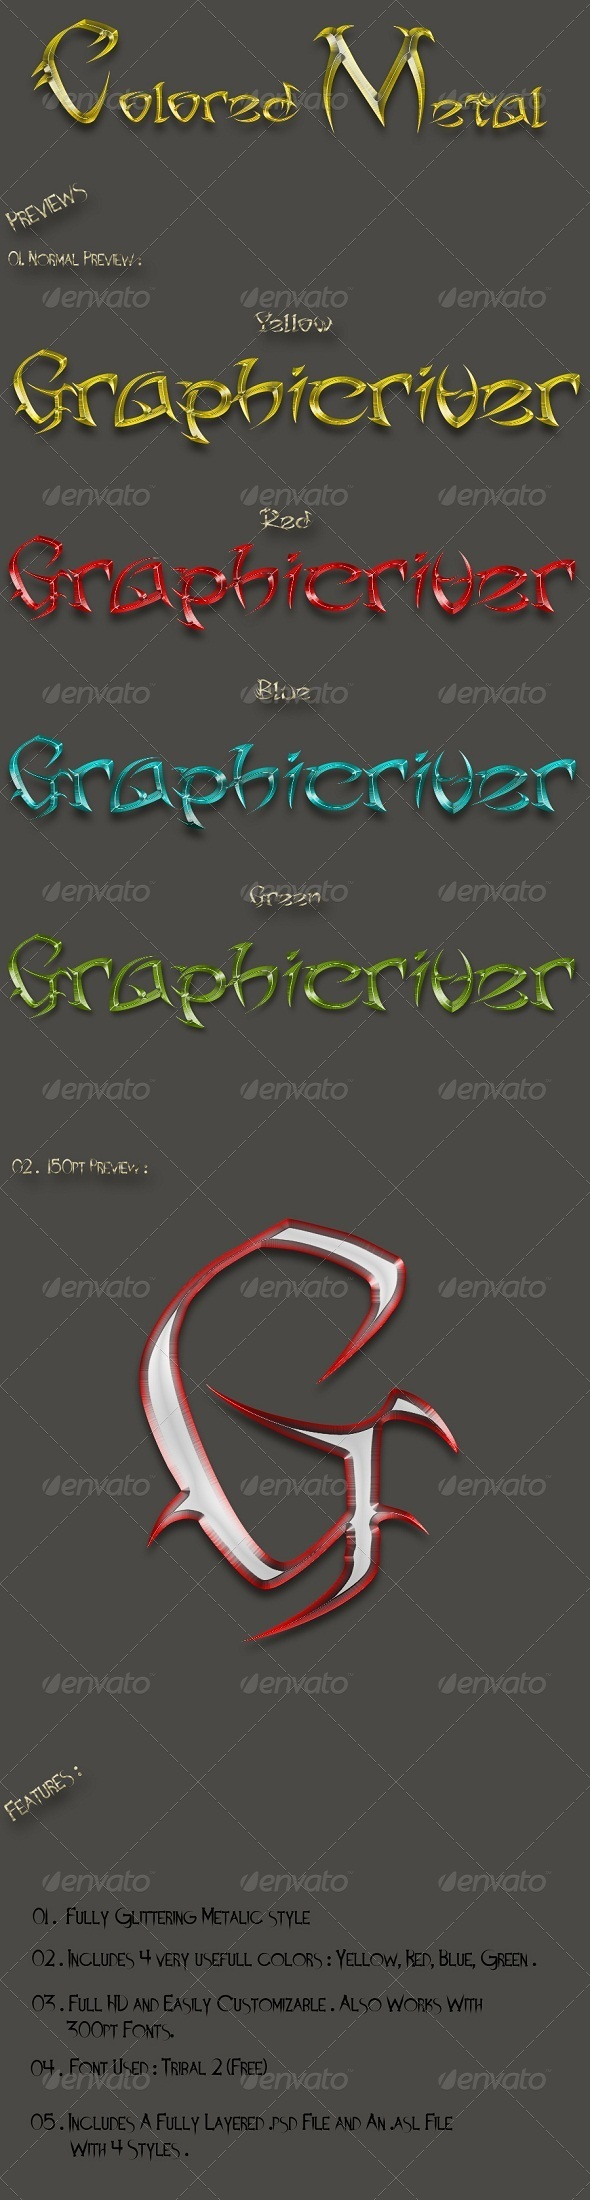 GraphicRiver Colored Metal Vol.1 6294719